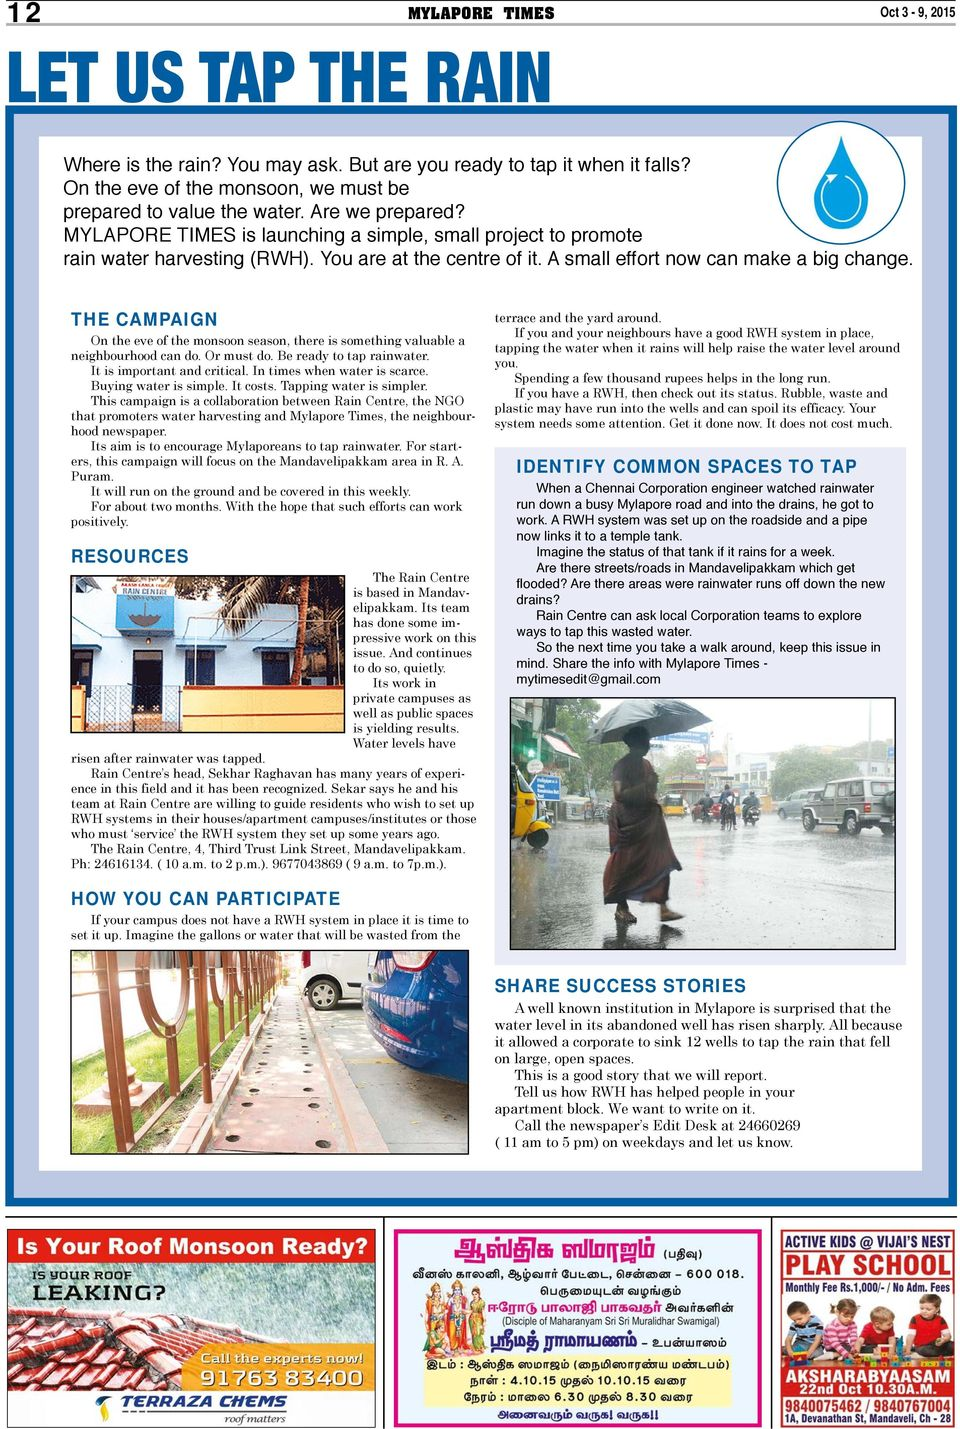 THE CAMPAIGN On the eve of the monsoon season, there is something valuable a neighbourhood can do. Or must do. Be ready to tap rainwater. It is important and critical. In times when water is scarce.